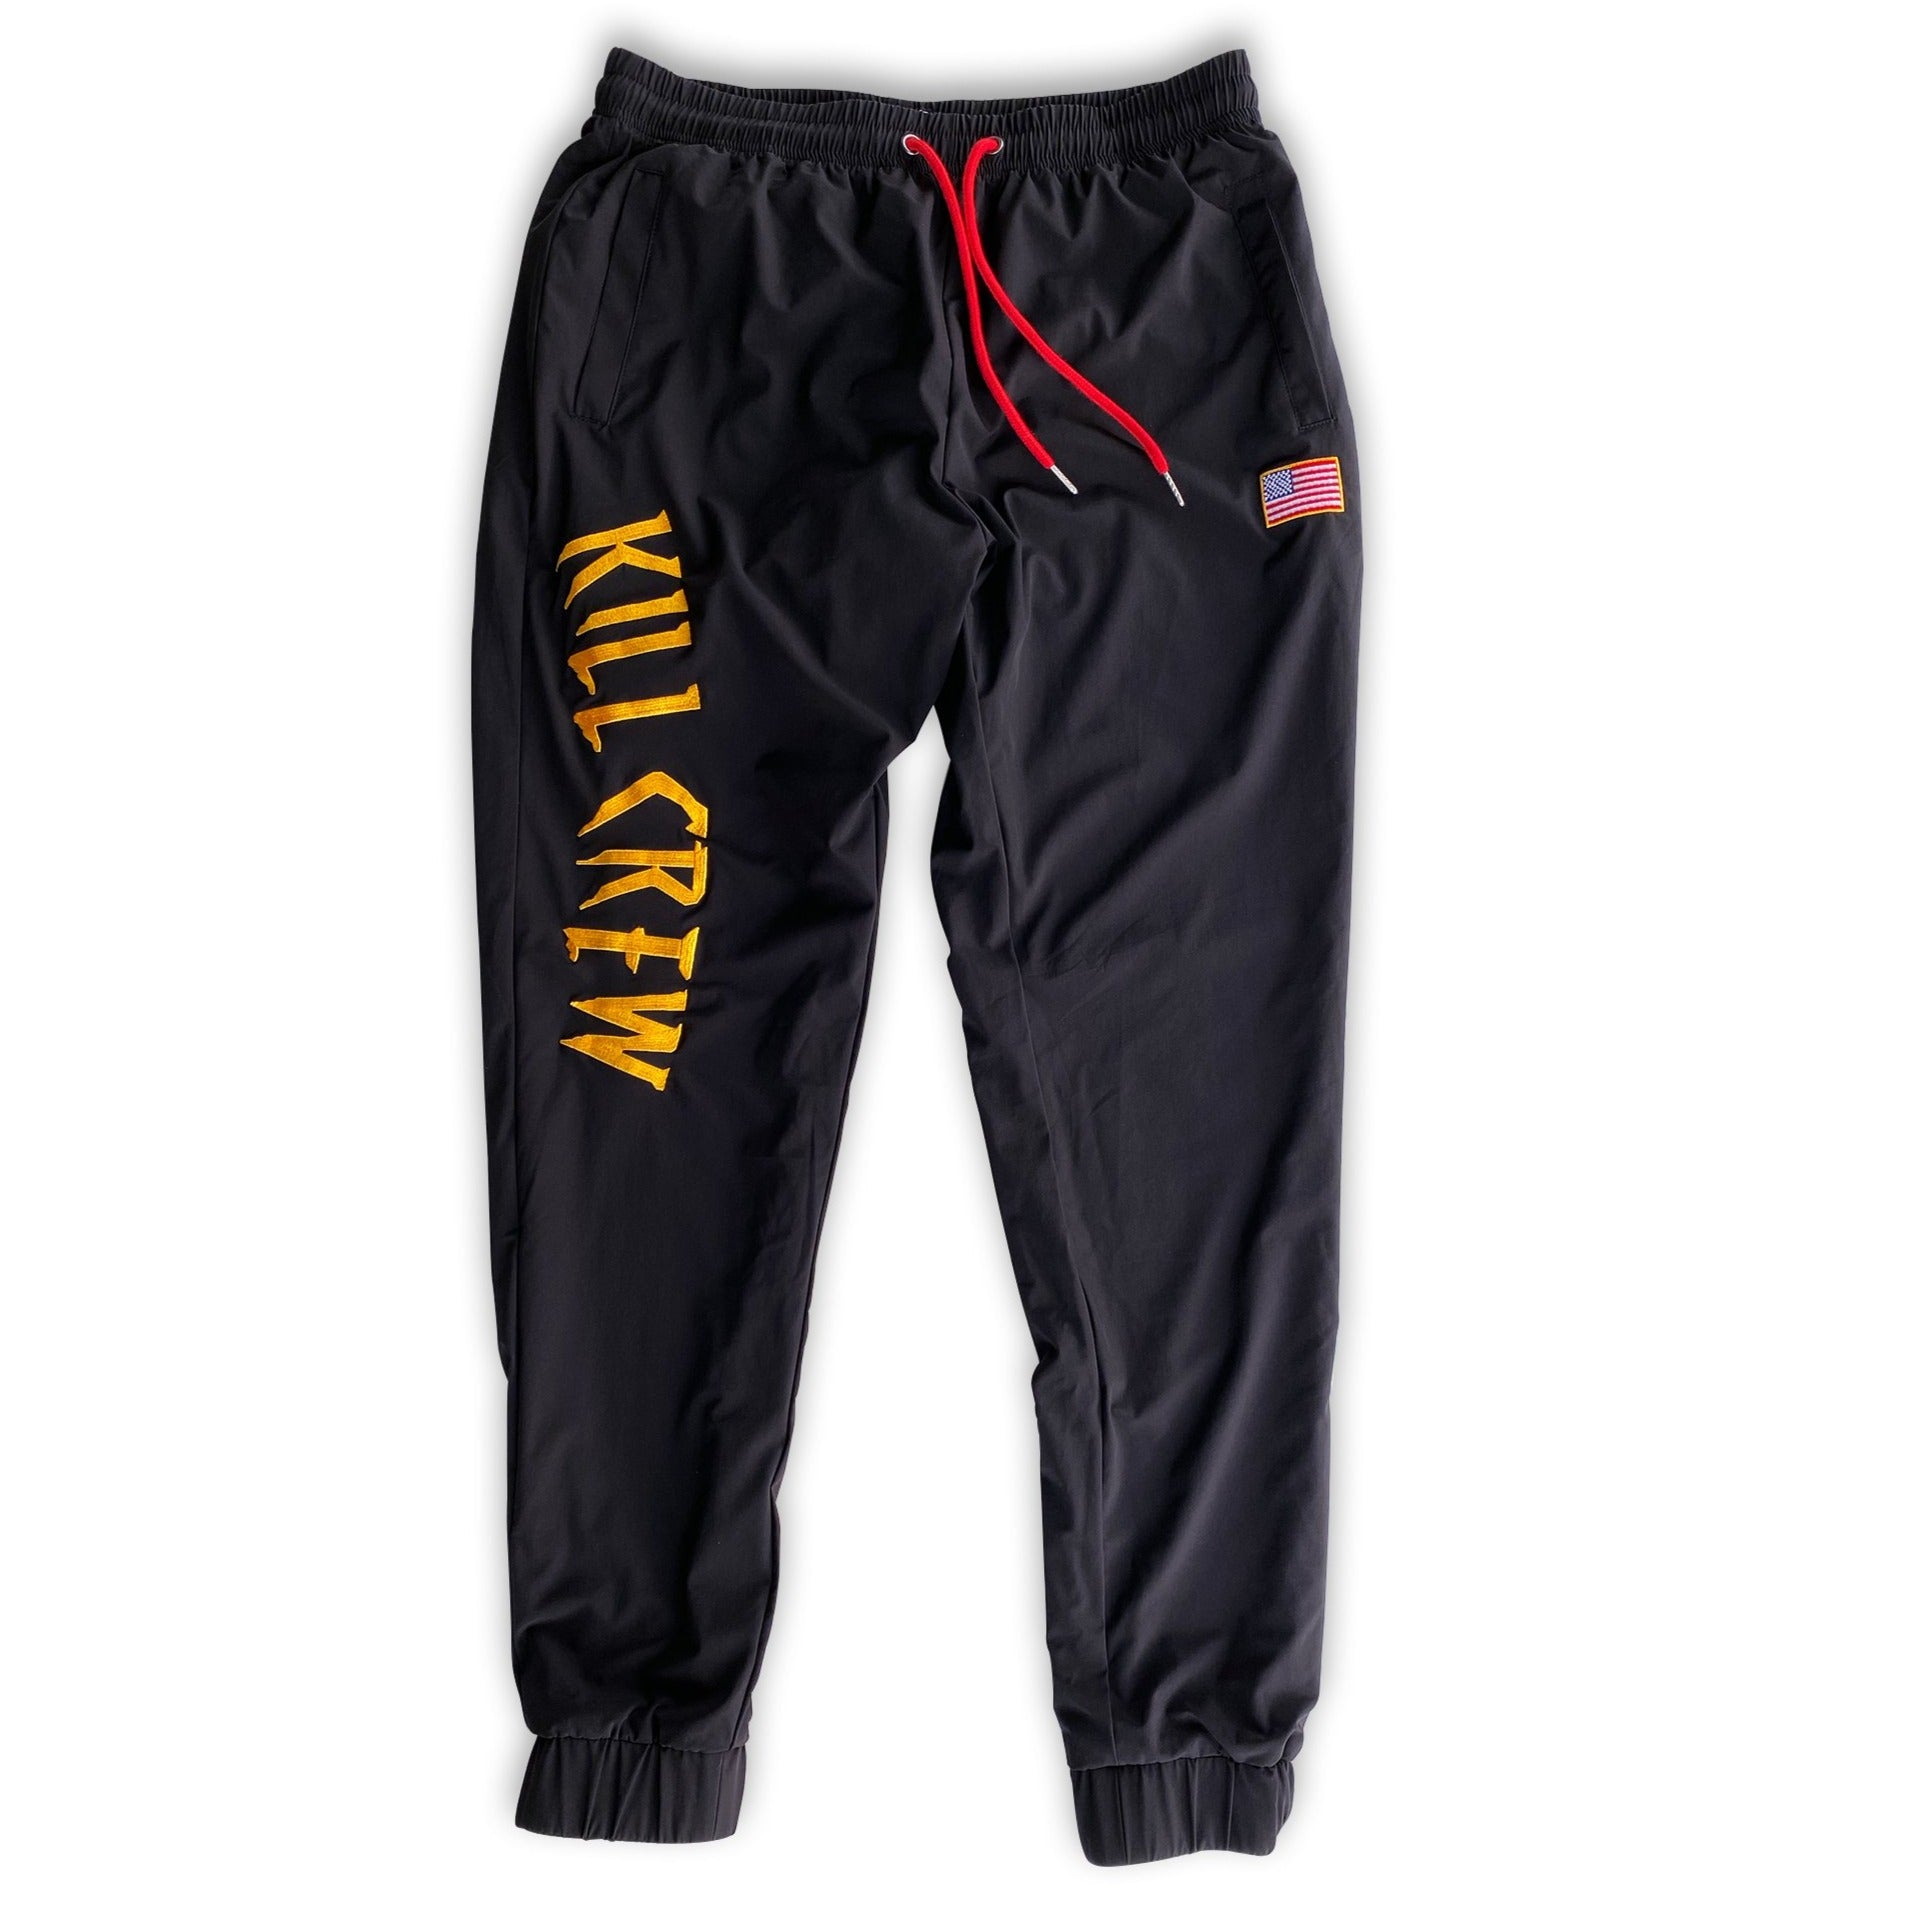 NYLON TECH PANTS - GOLD/BLACK